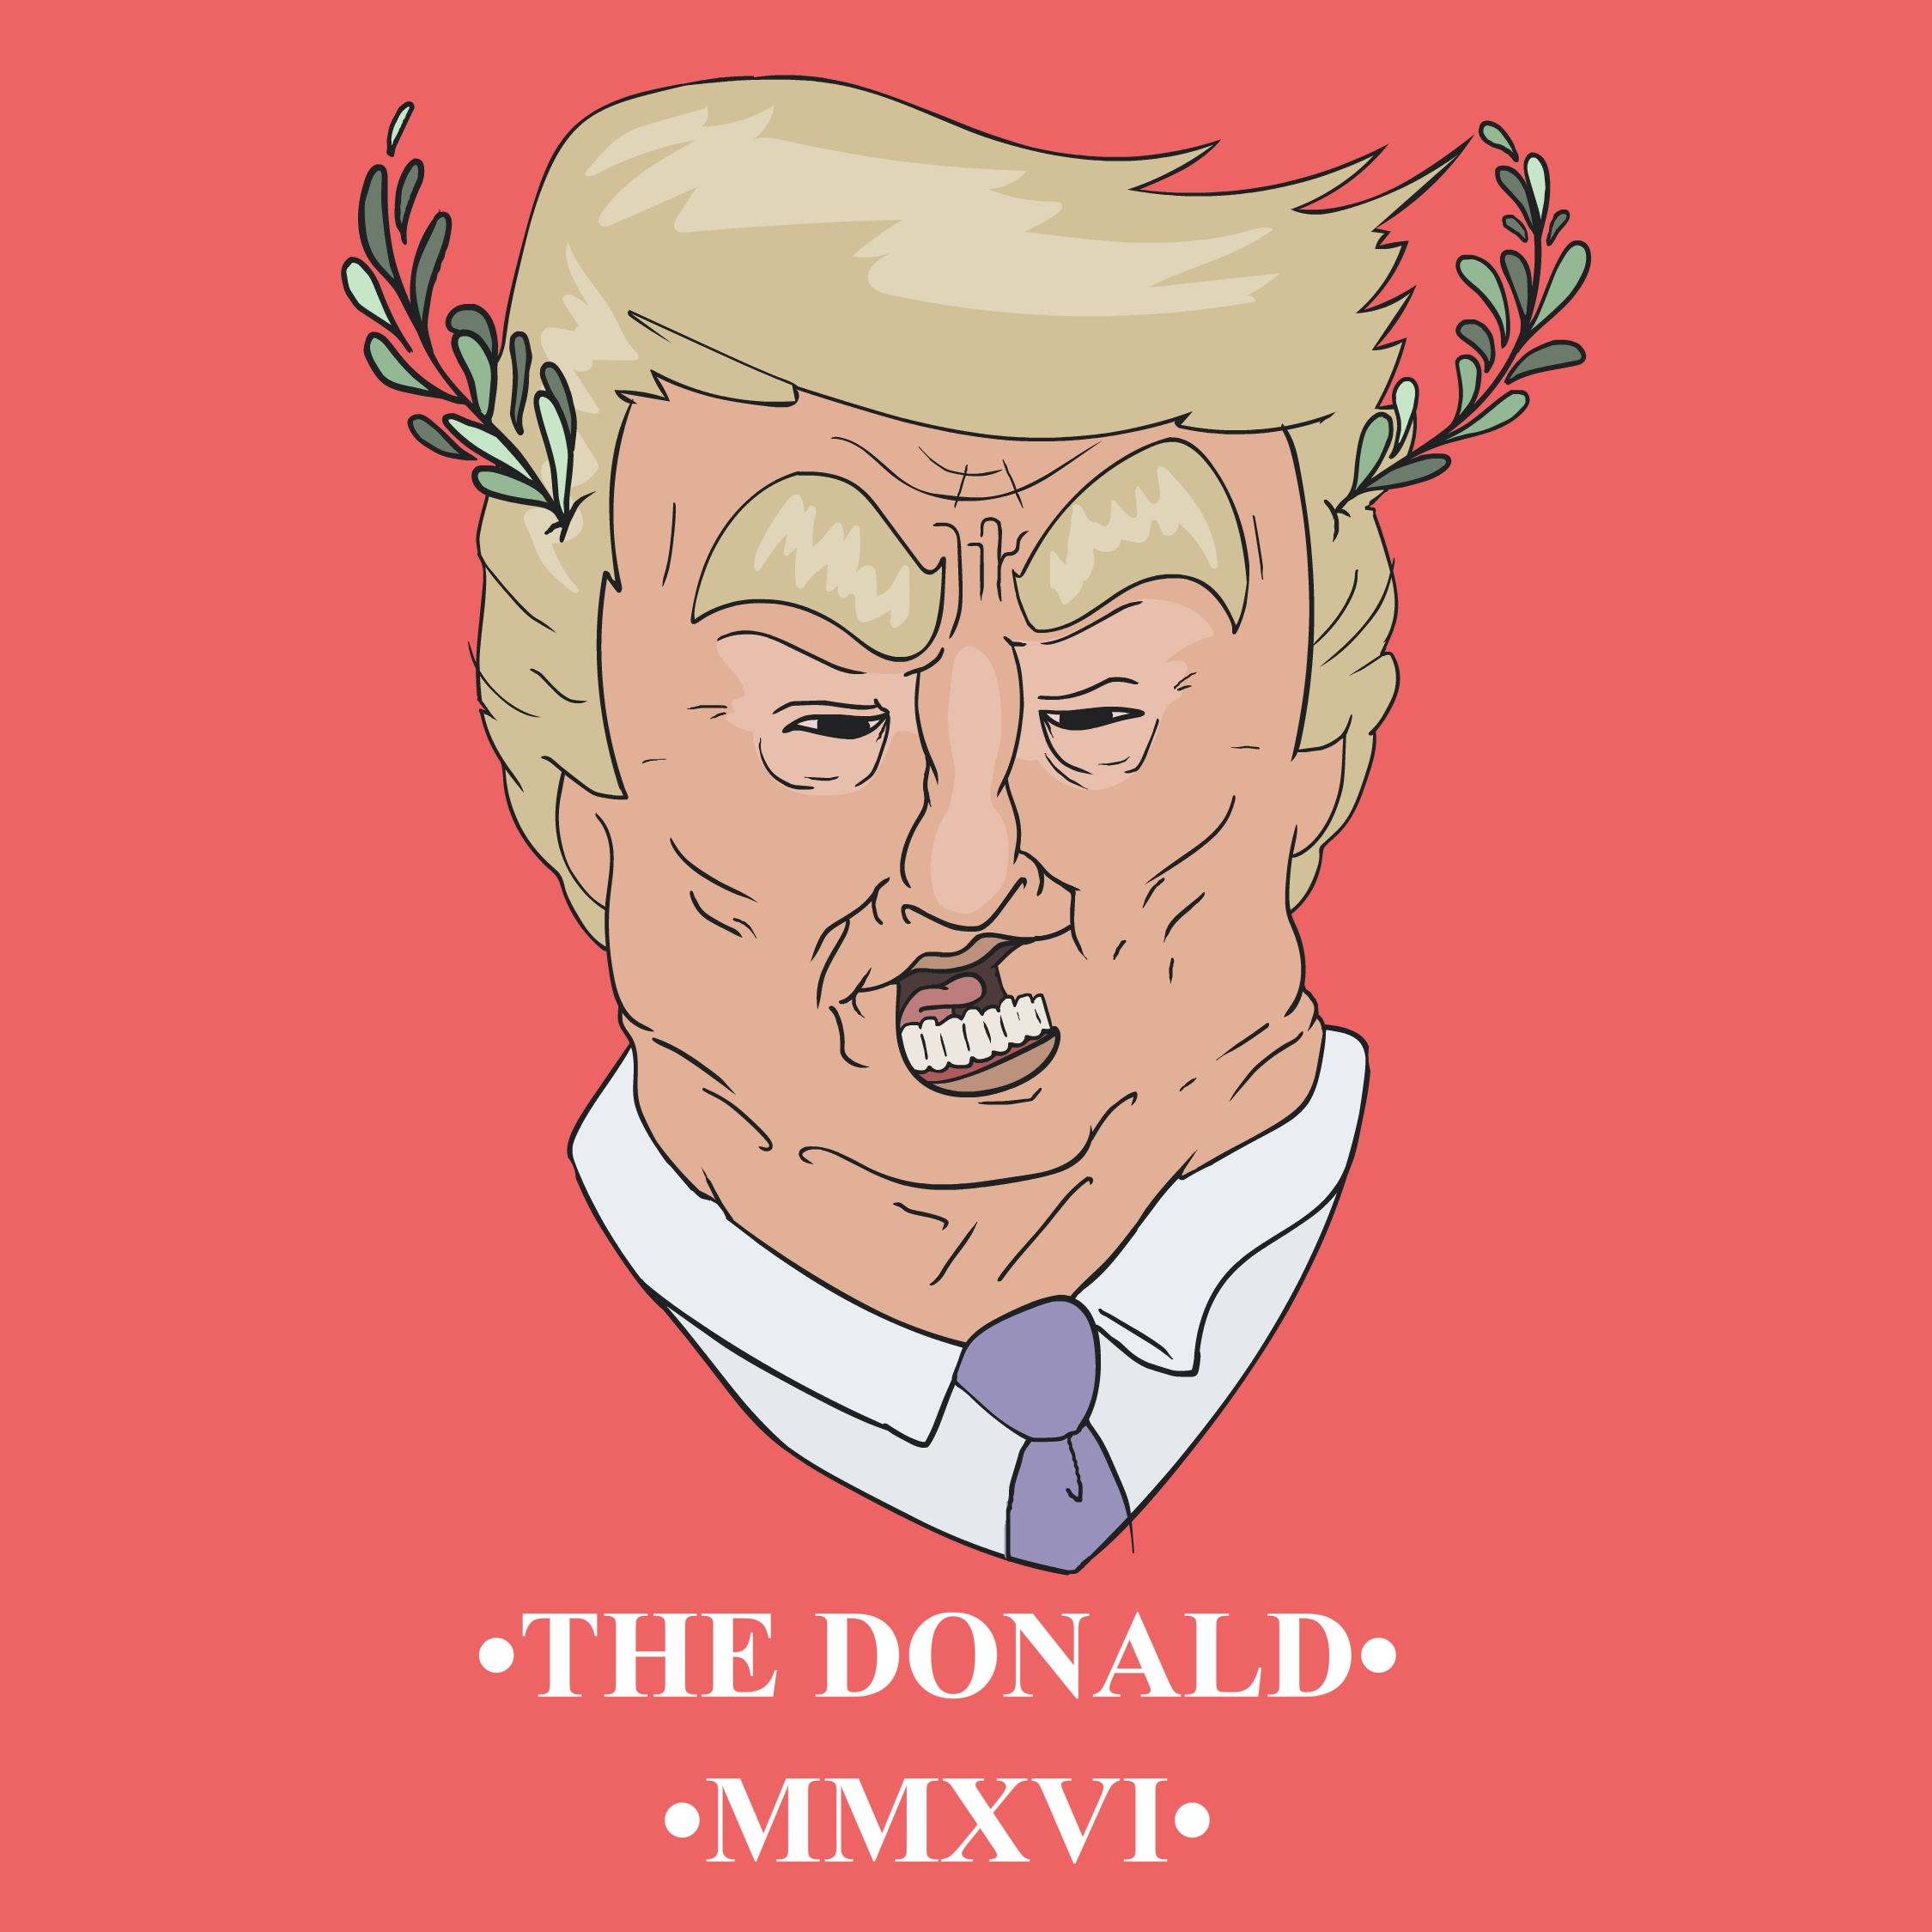 The Donald 2k16